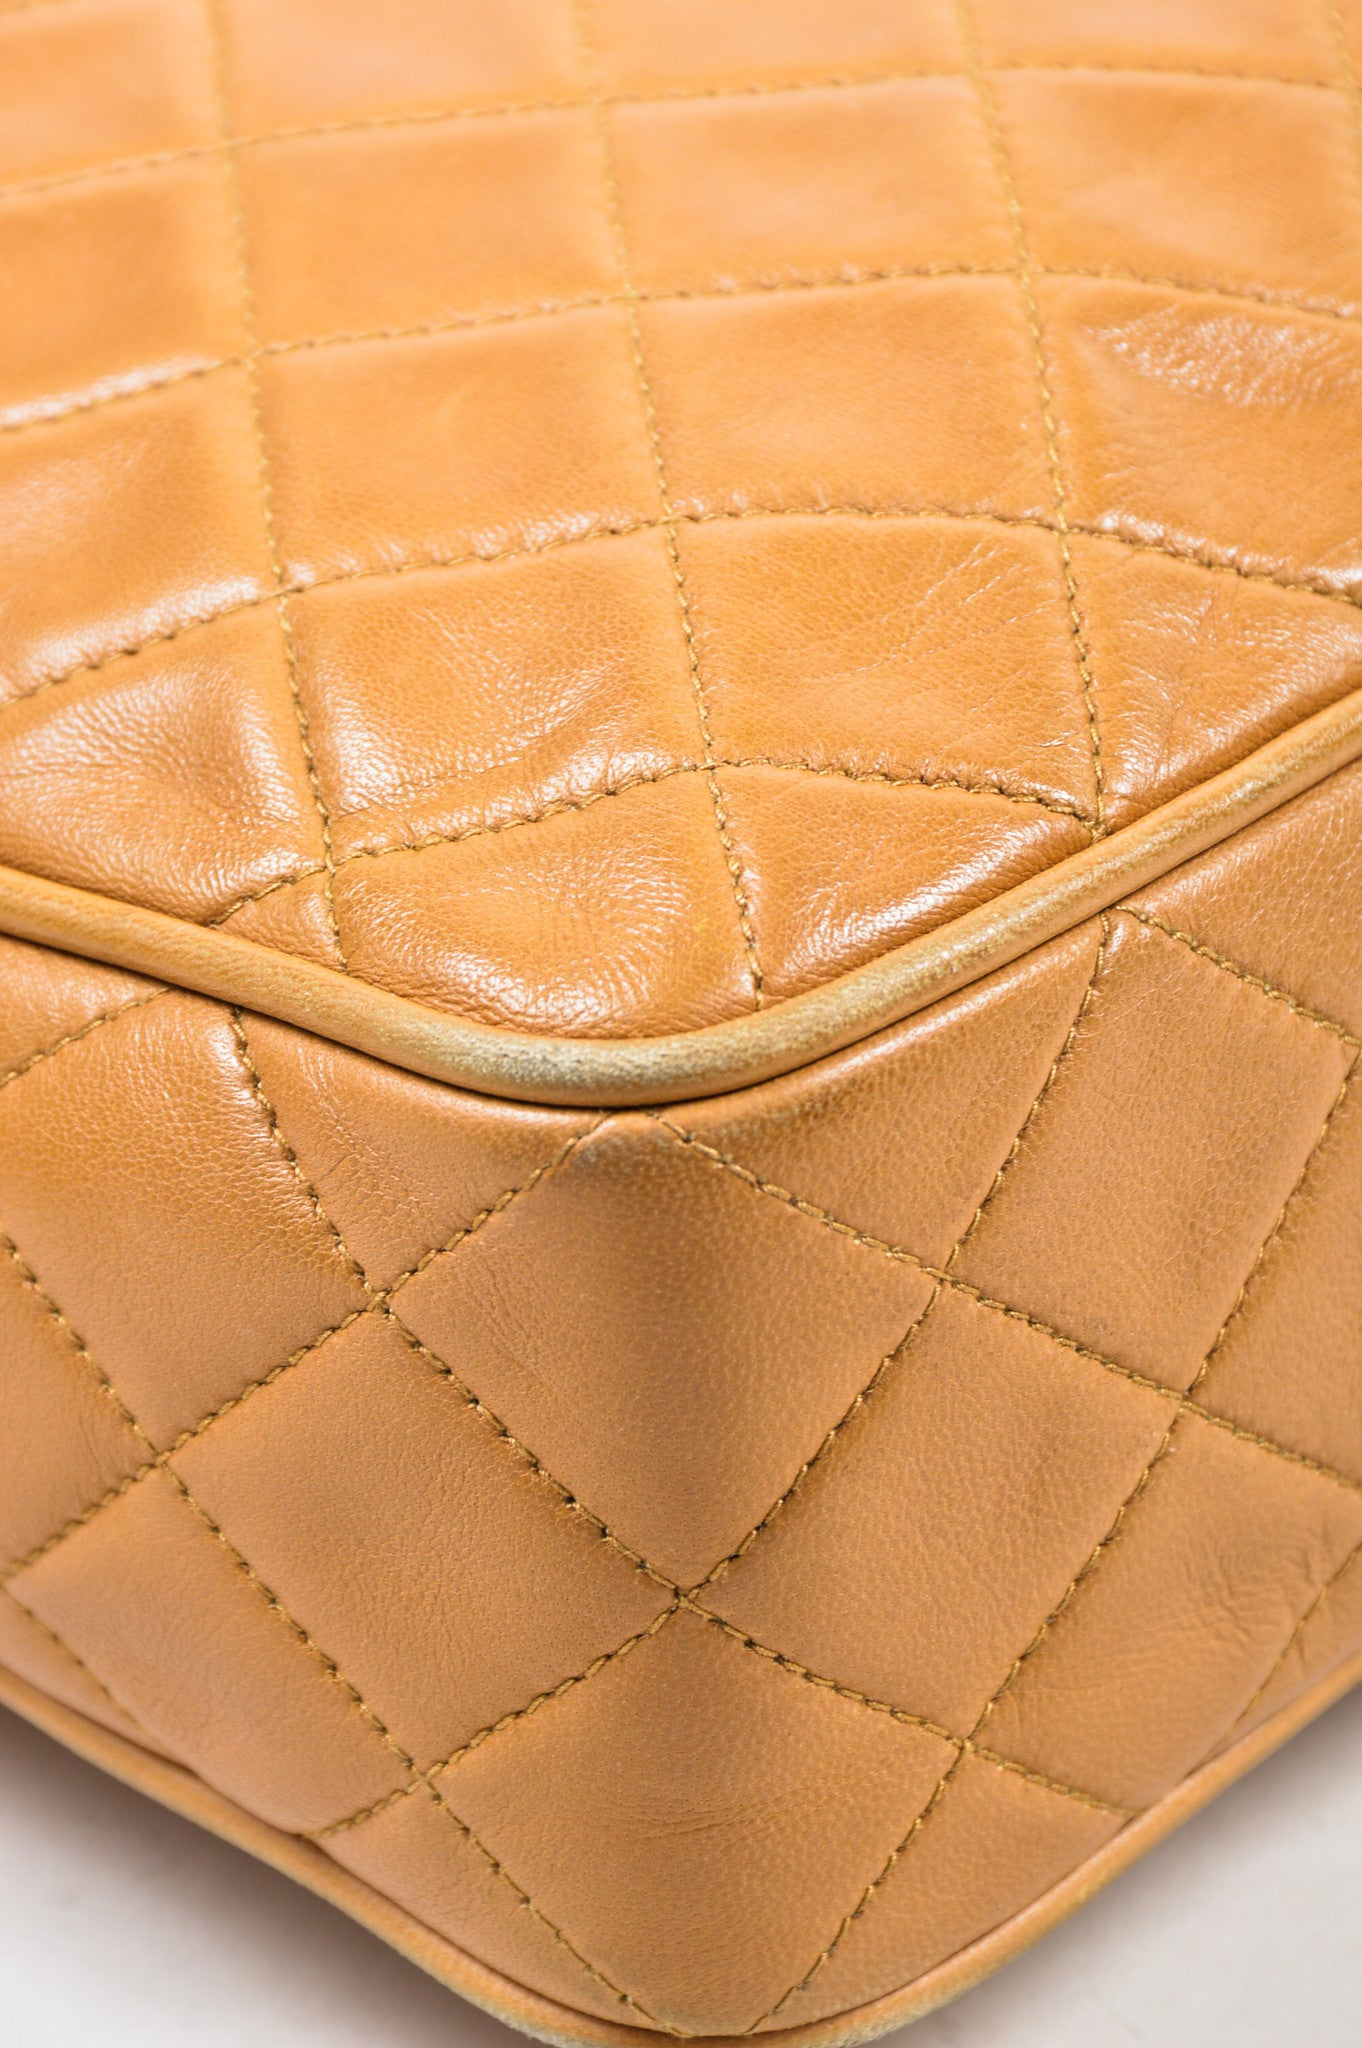 Caramel Tan Chanel Lambskin Leather Quilted 'CC' Tassel Shoulder Bag Detail